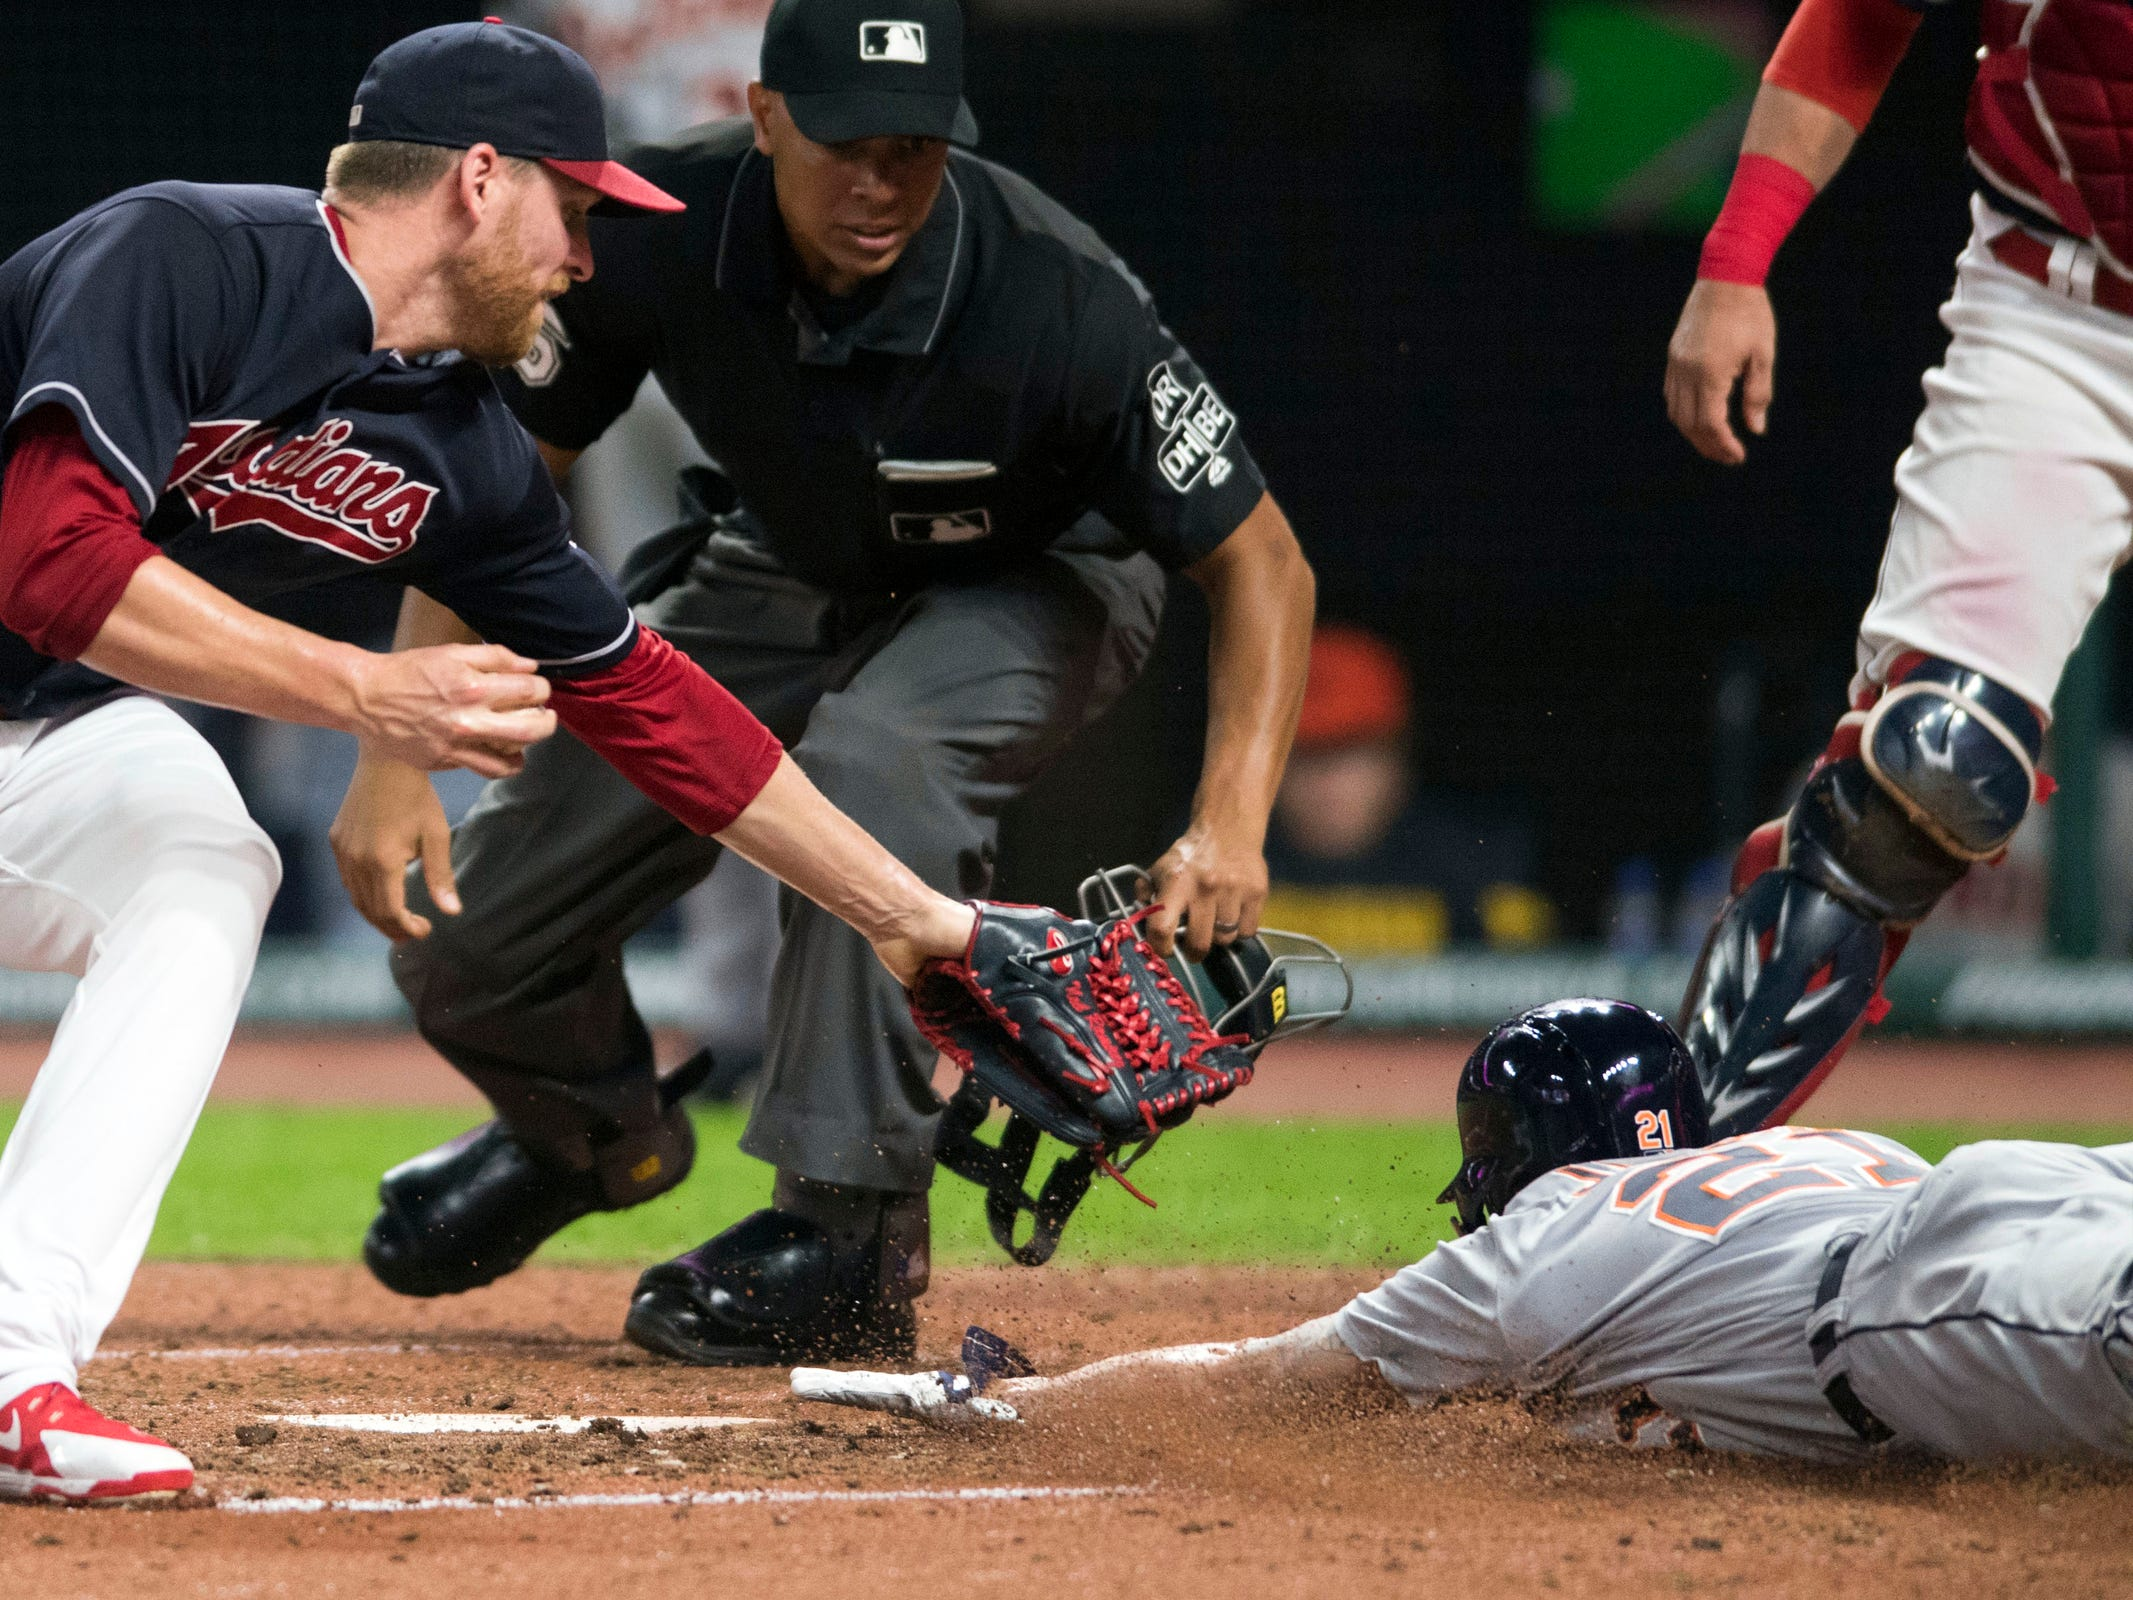 Detroit Tigers center fielder JaCoby Jones scores on a wild pitch as Cleveland Indians reliever Neil Ramirez covers the plate during the eighth inning at Progressive Field, Friday, Sept. 14, 2018, in Cleveland.